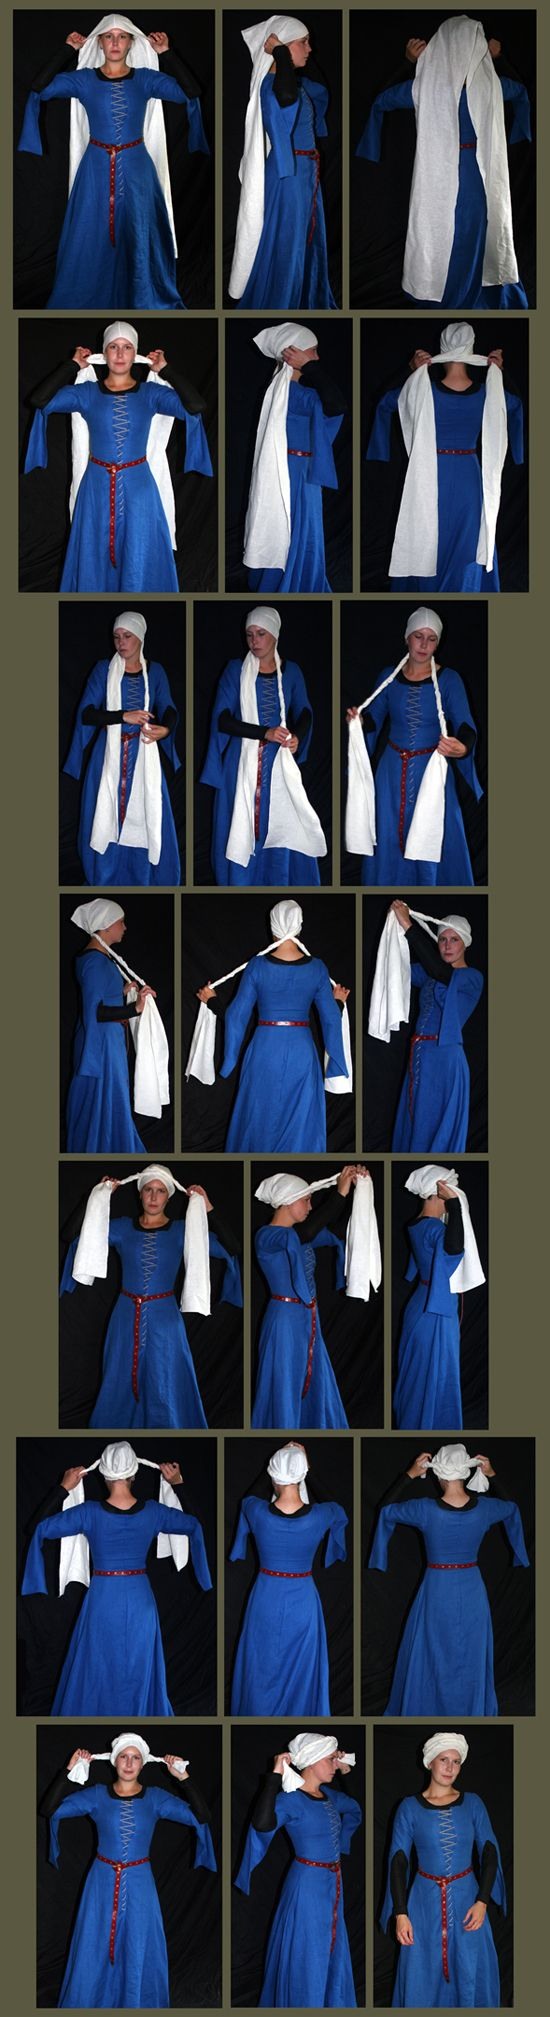 Tutorial - How to wrap your hair in a turban.  (yes, these were worn in Europe, not just the middle east).  Equally useful for managing long hair and hiding short hair.  Just make sure you choose a very lightweight cloth that twists well.  Cotton gauze works well for this.